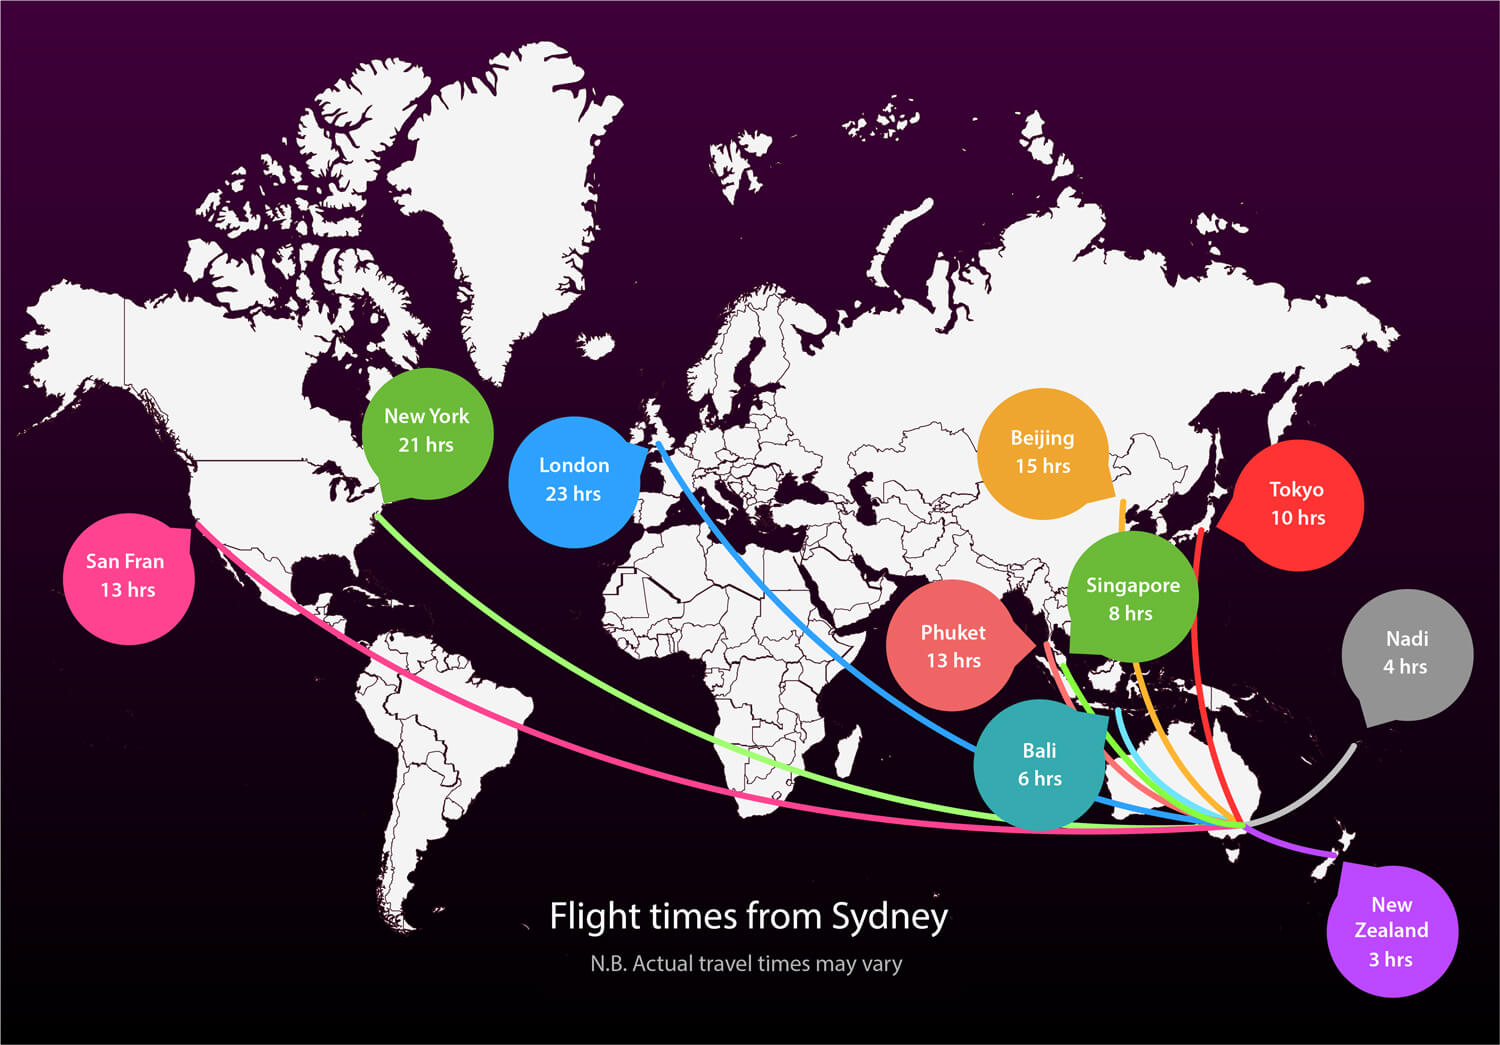 Flight times from Sydney on a map